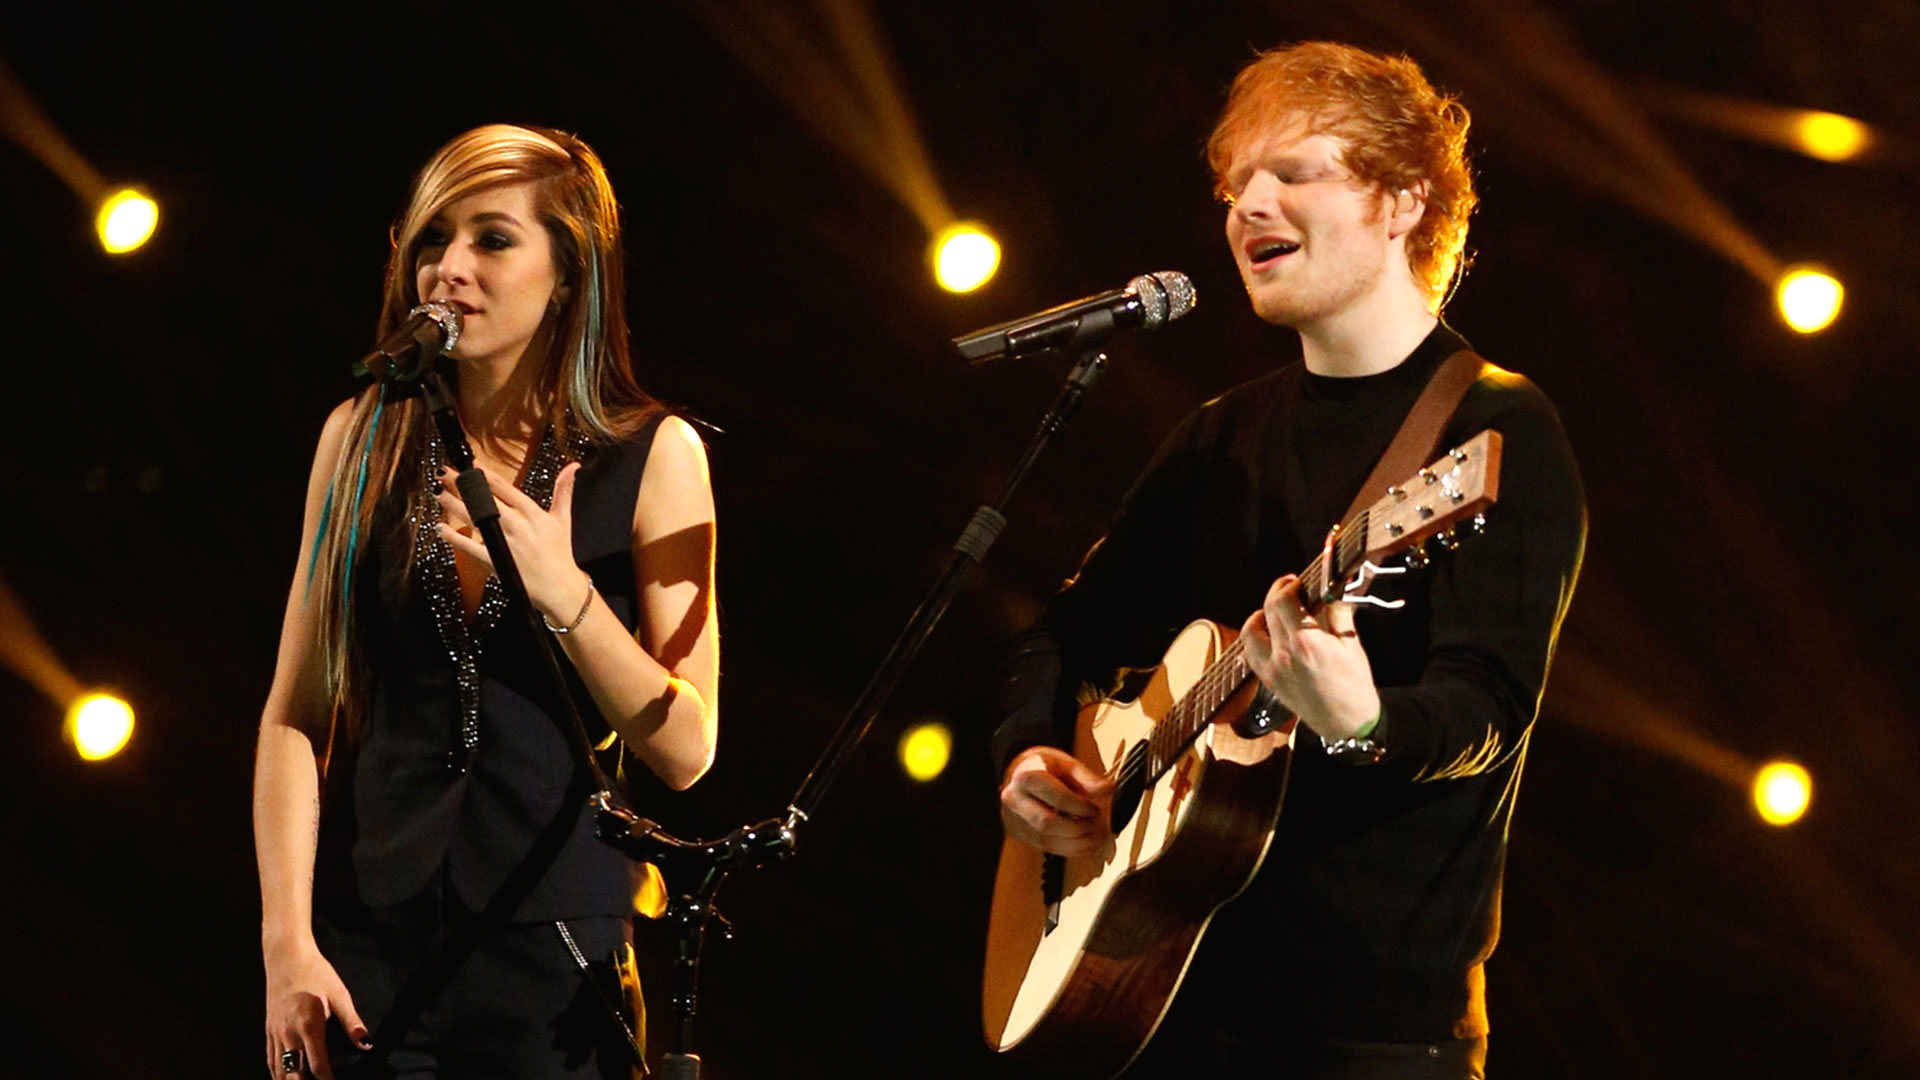 ed sheeran and christina grimmie all of the stars mp3140520_2784021_Ed_Sheeran_and_ h08QCqT5